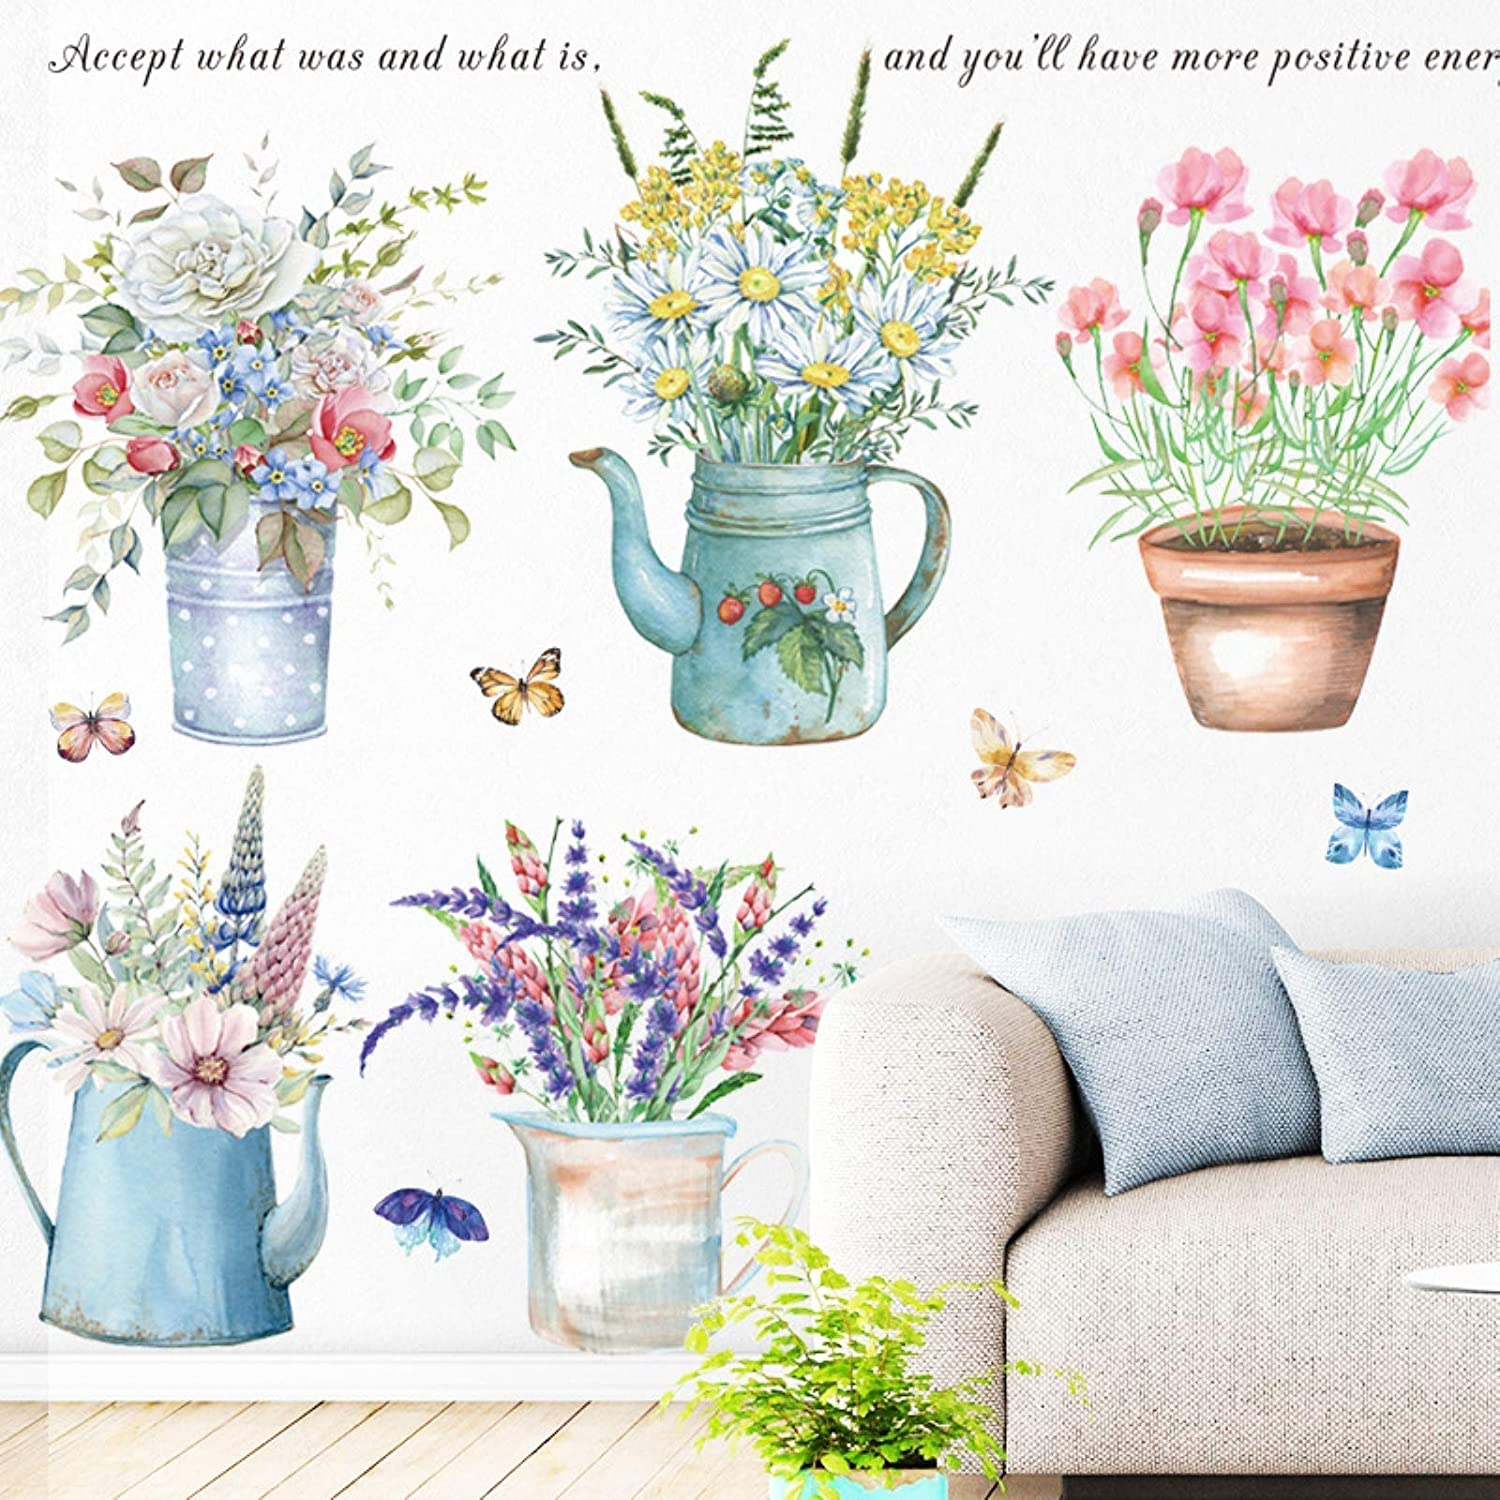 Flowers Butterfly Wall Stickers Spring Garden Potted Plant Wall Decals Removable DIY Peel and Stick Art Murals for Bedroom Living Room Kitchen Nursery Classroom Home Decoration (Flower)